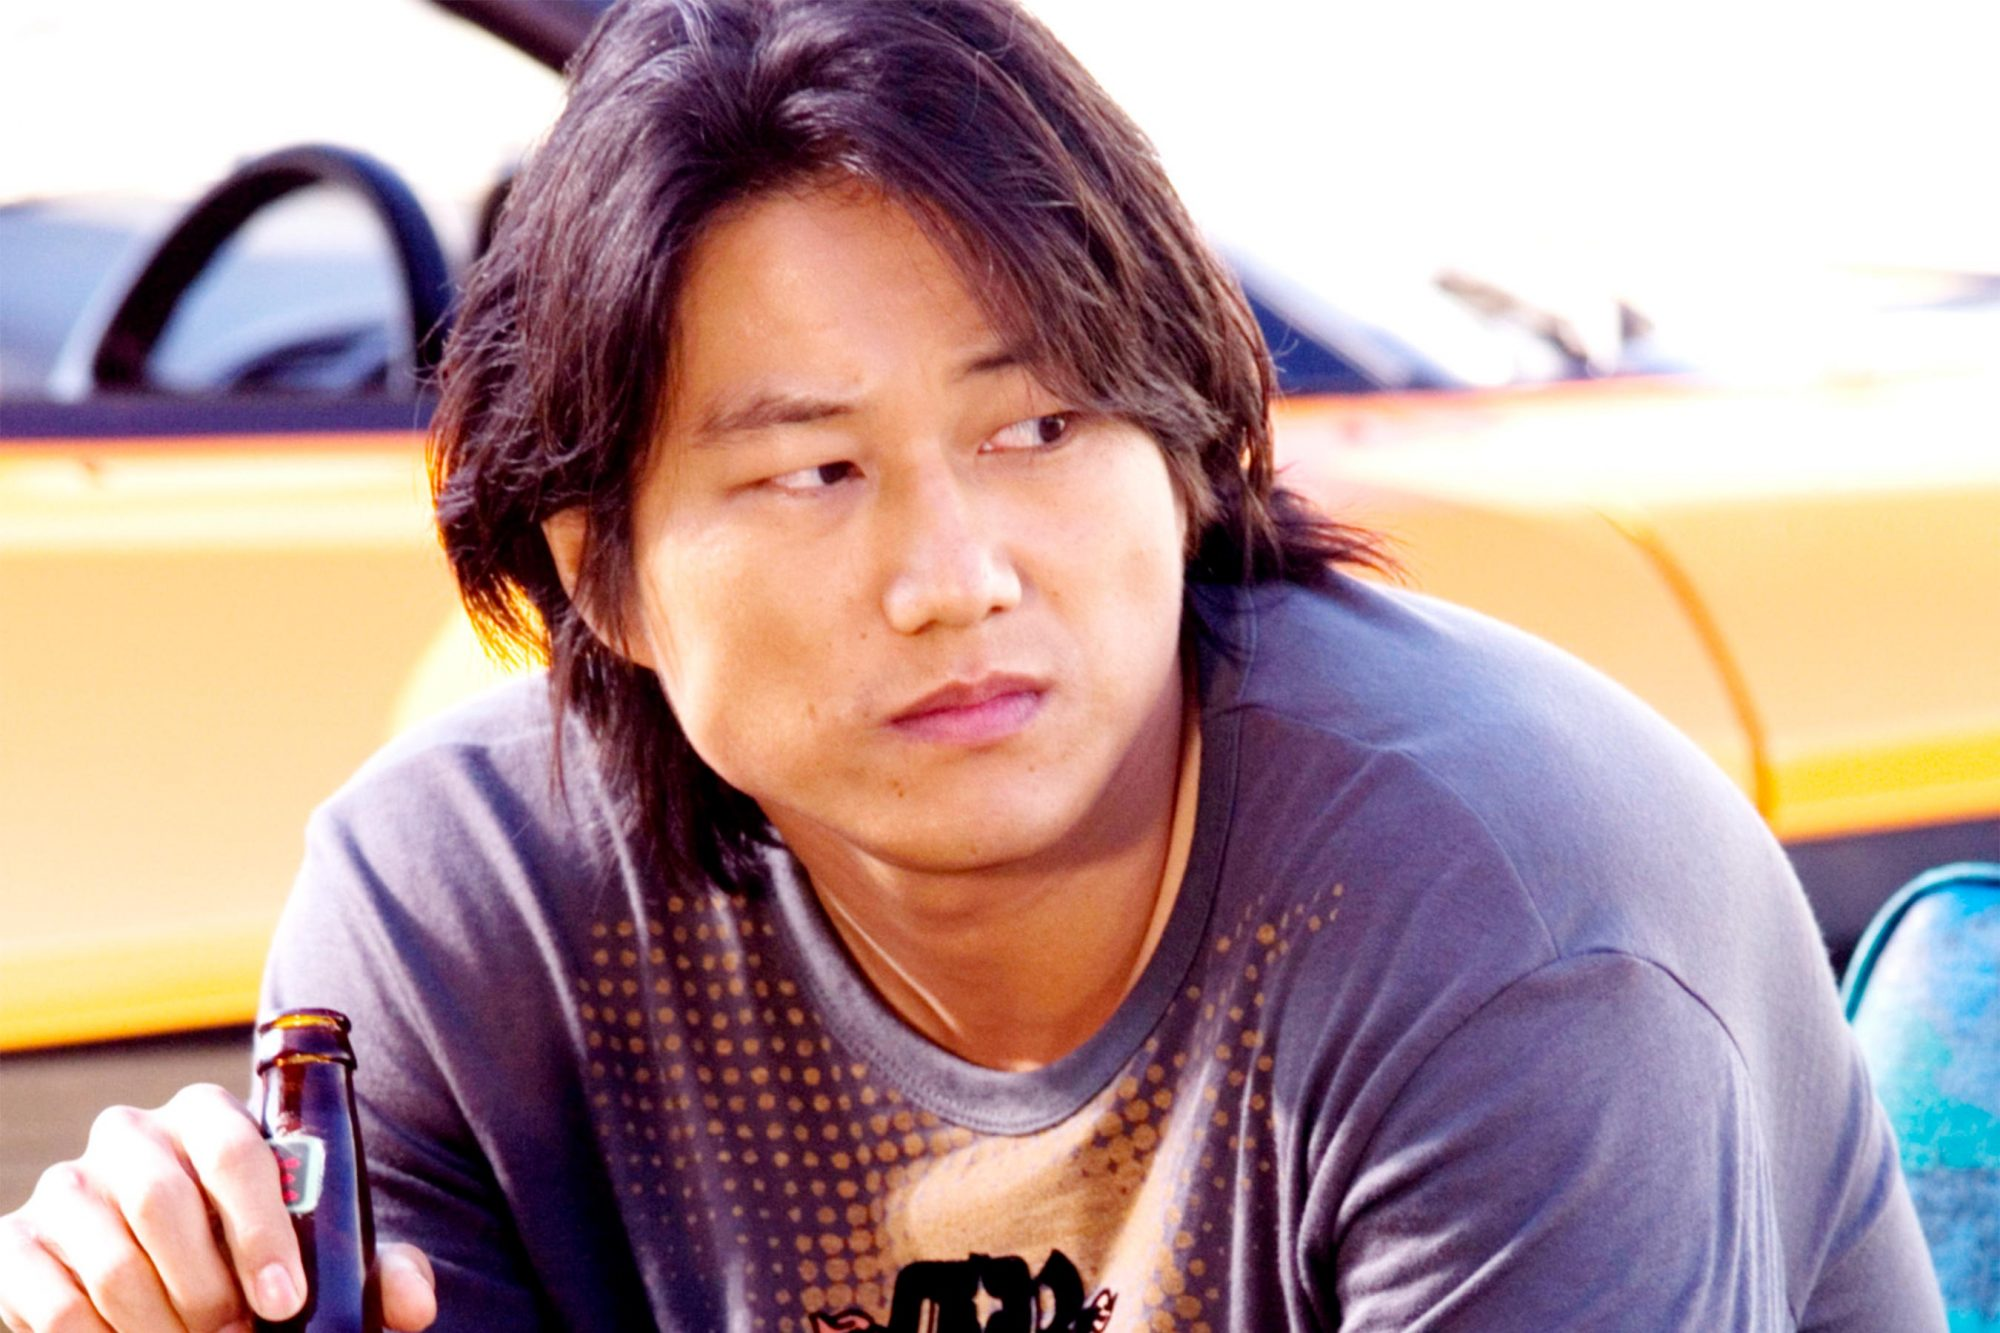 THE FAST AND THE FURIOUS: TOKYO DRIFT, Sung Kang, 2006. ©Universal/courtesy Everett Collection